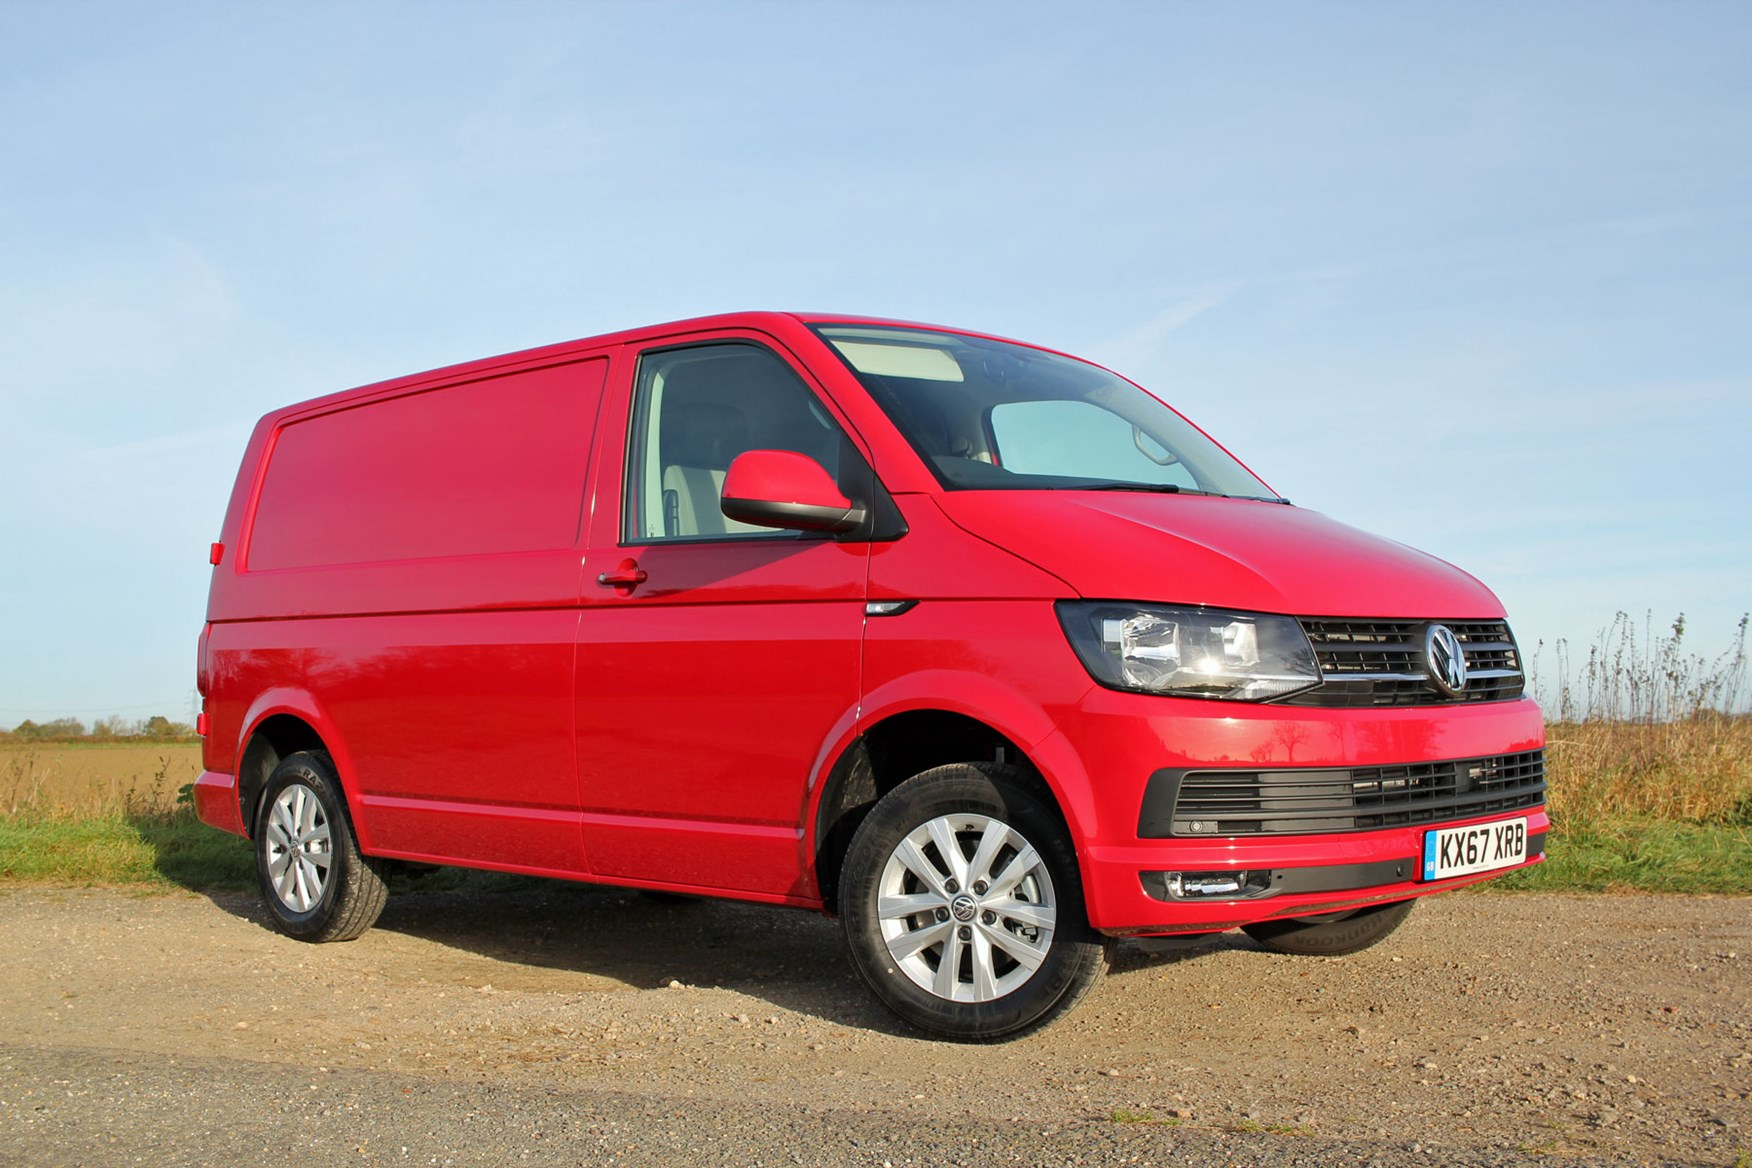 VW Transporter T6 TSI 150 review - front view, red